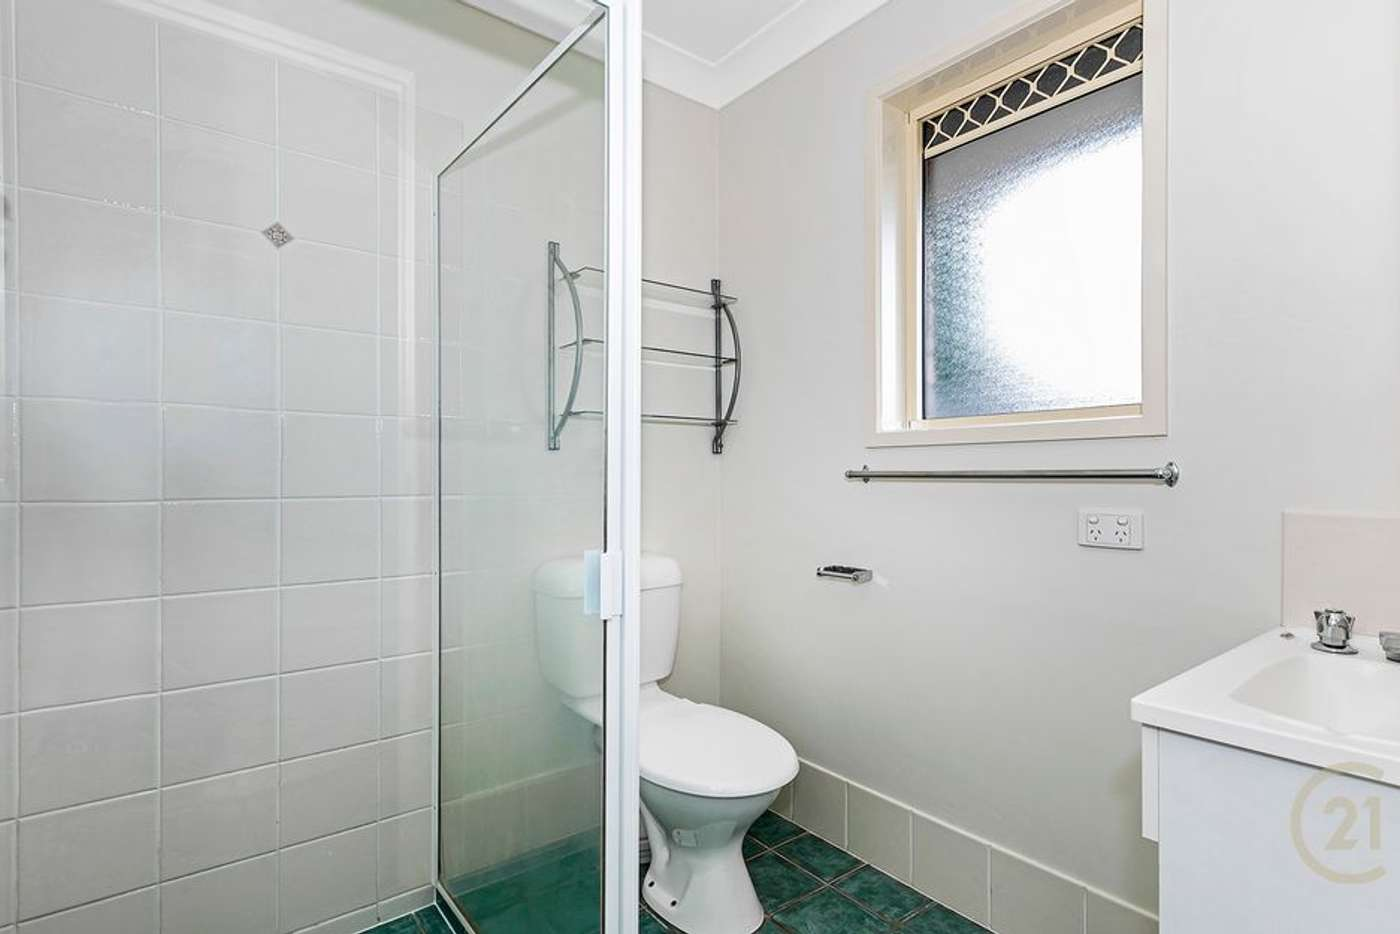 Seventh view of Homely house listing, 67 Kirralee Crescent, Upper Kedron QLD 4055